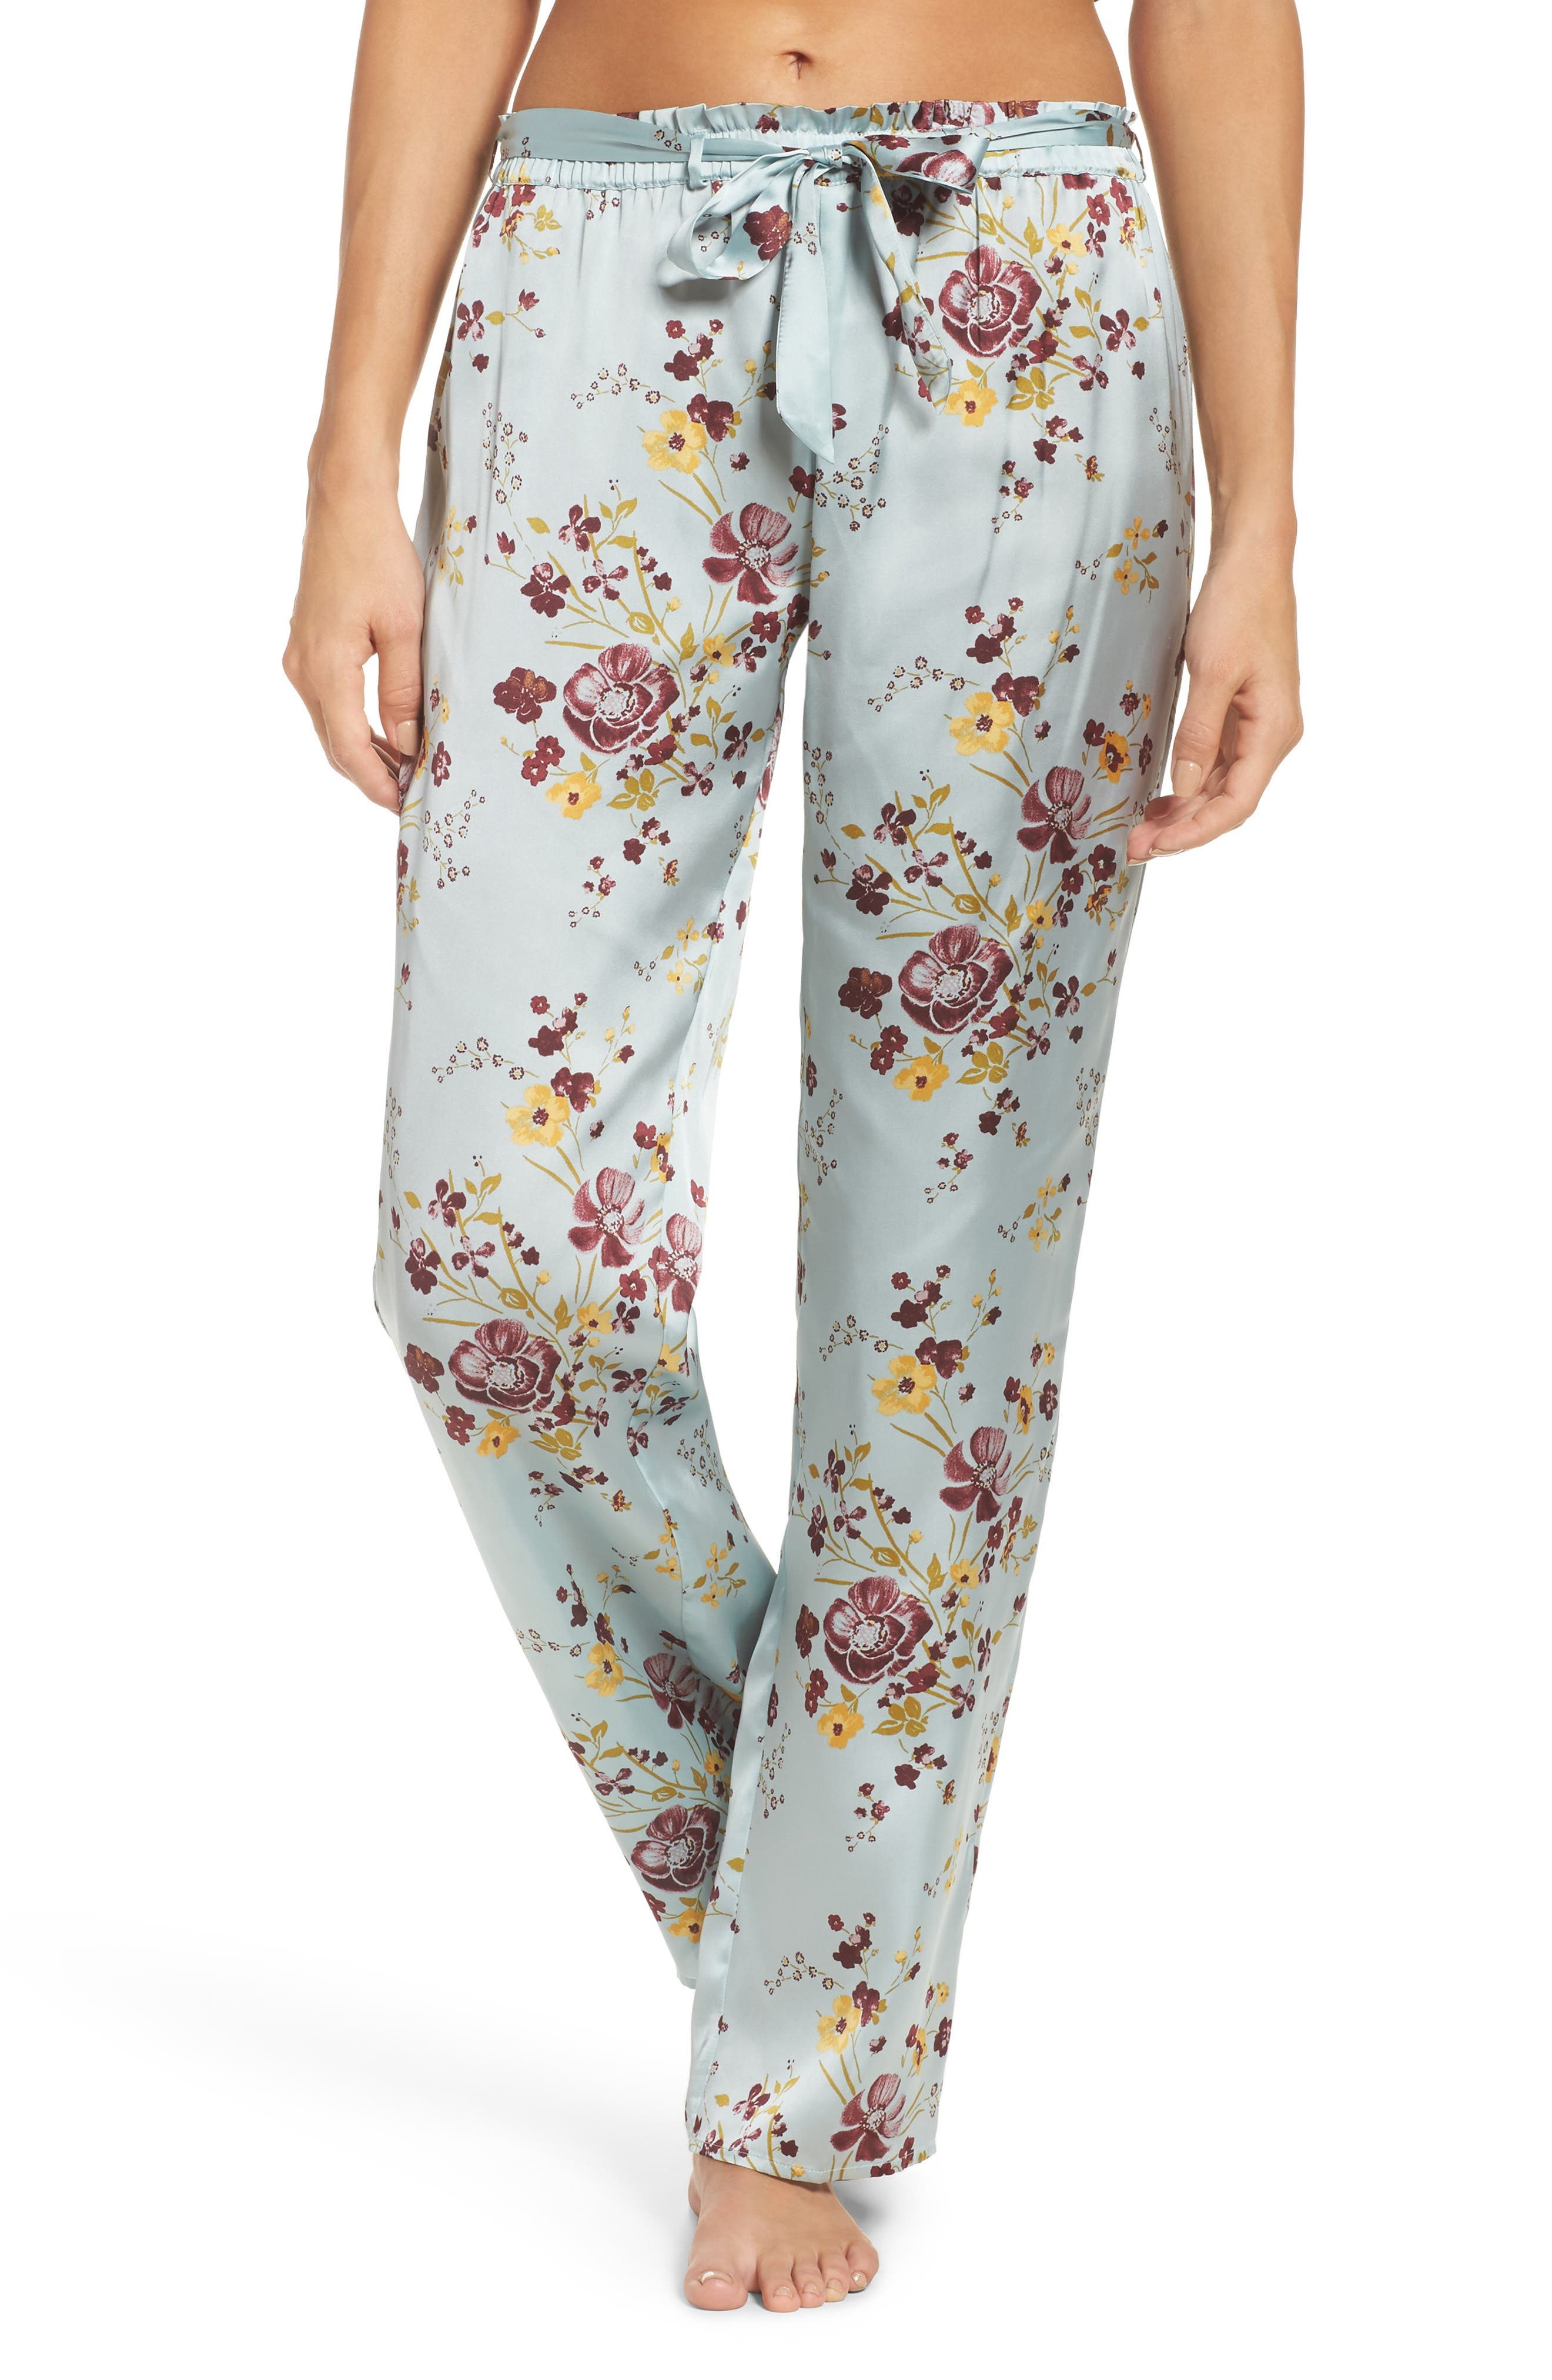 Chelsea28 In My Dreams Pajama Pants